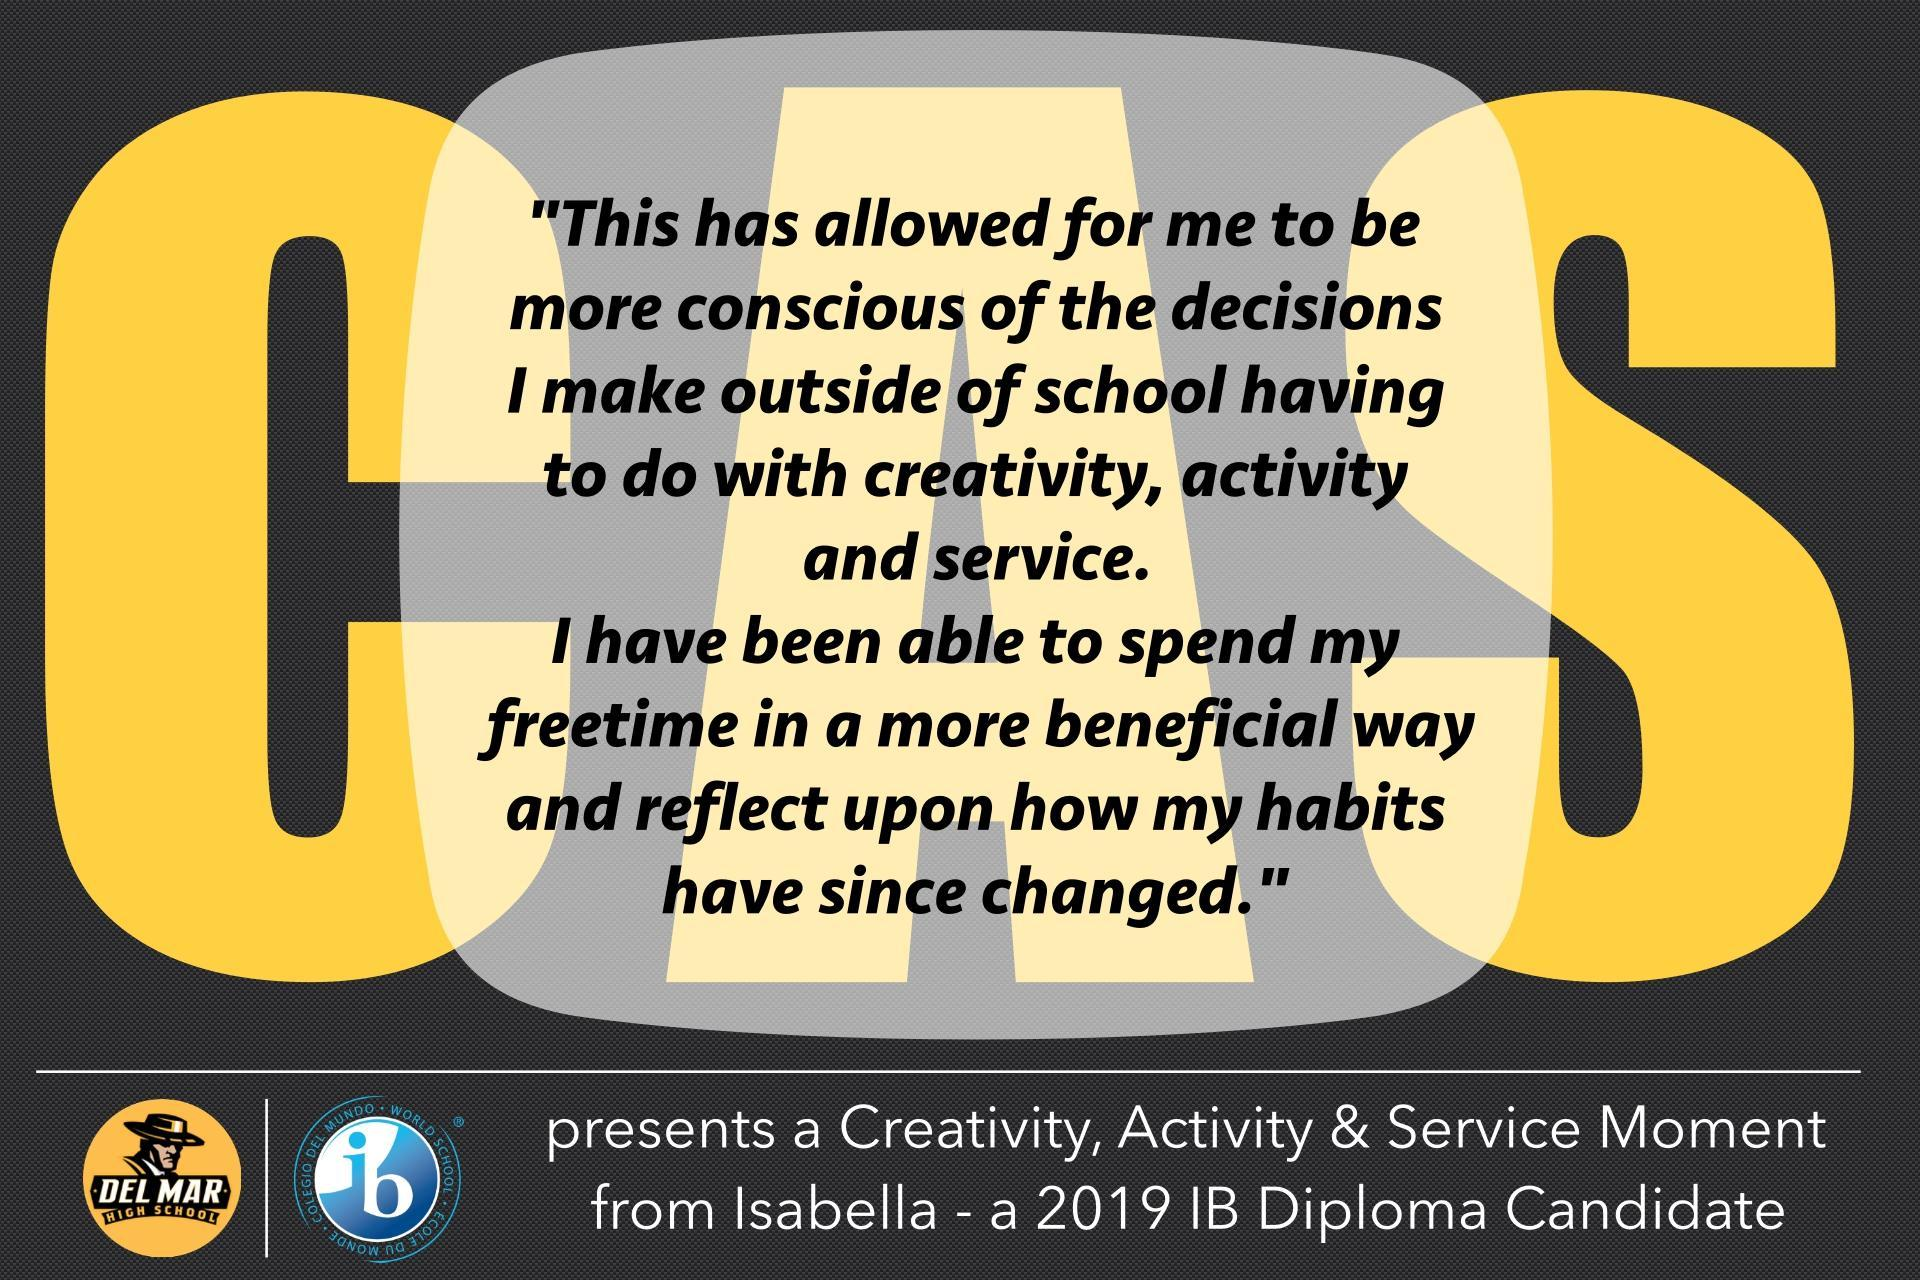 Image of Creativity, Activity and Service quote from Isabella